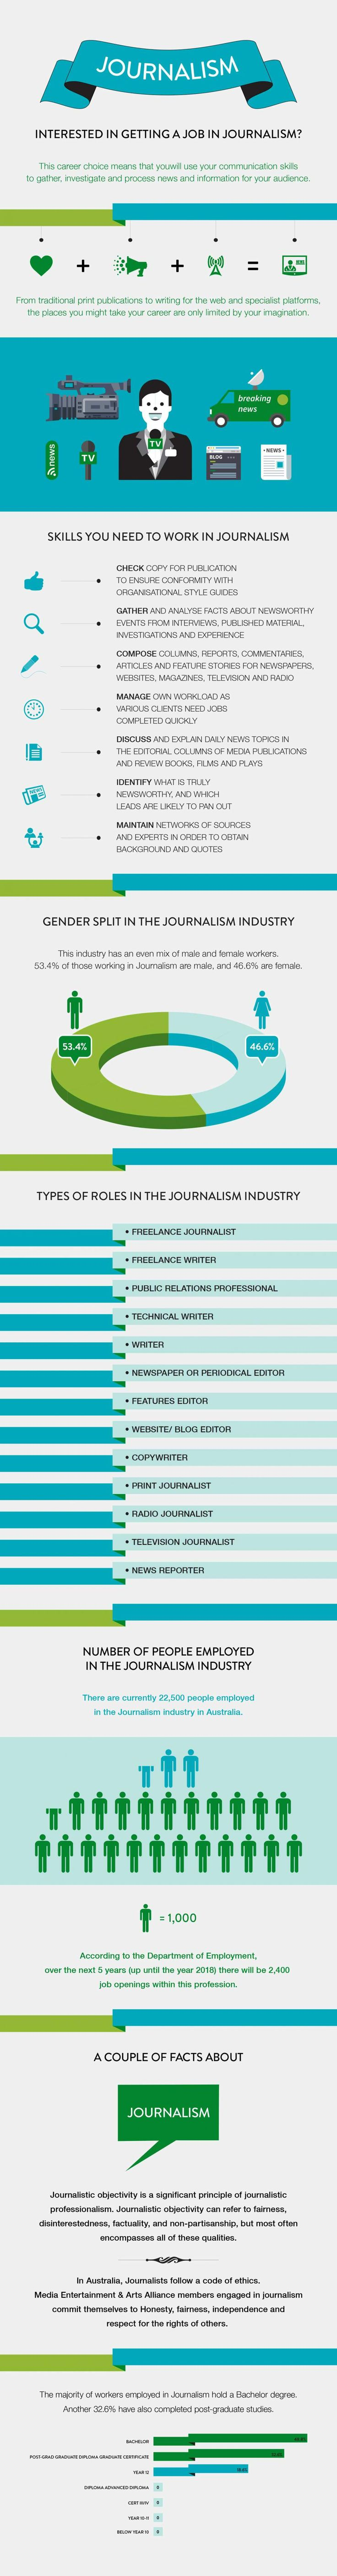 best images about education infographics student journalism has got to be one of the most exciting careers to pursue and today s advancing techn